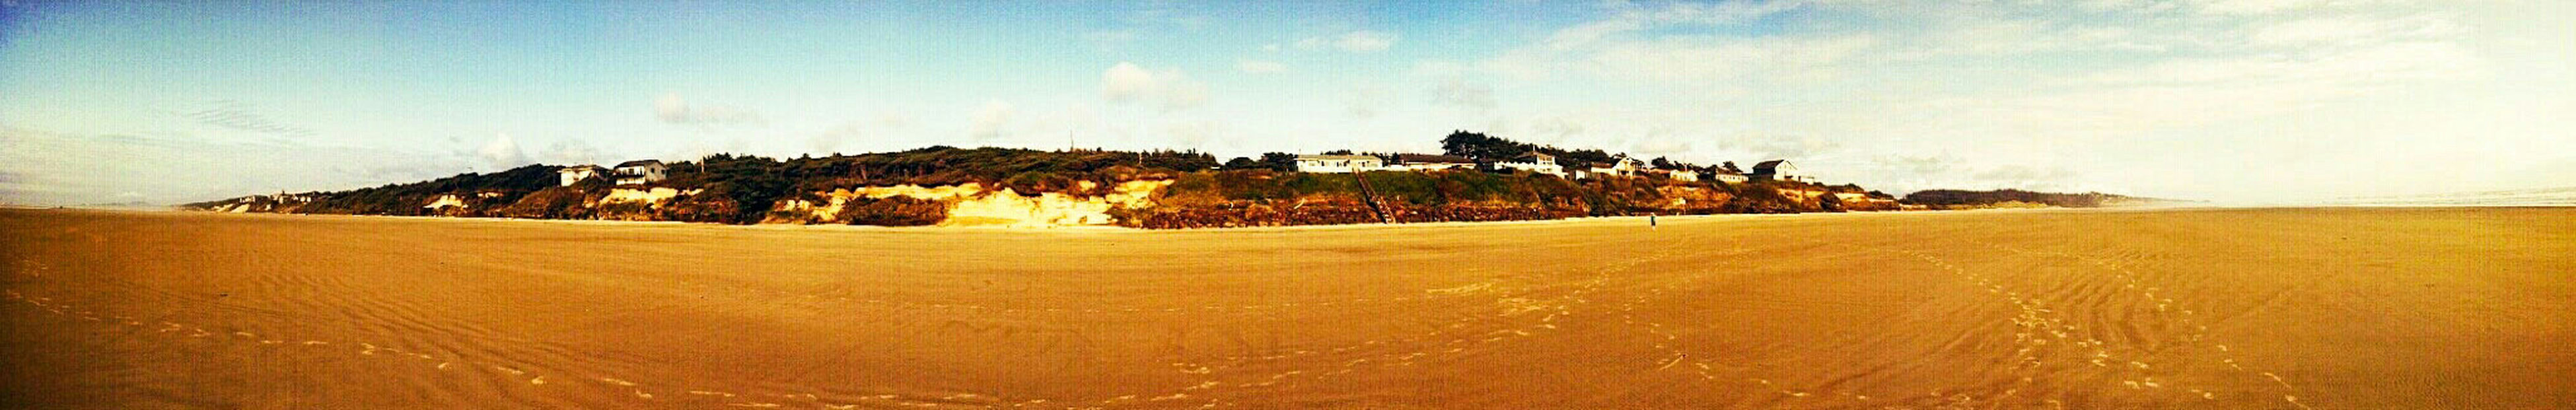 As Far As The East Is From The West... Panorama shot taken on Oregon's coastline at low tide. The Great Outdoors With Adobe East West Coastline Landscape Beach Photography Sandy Beach Ocean Oregonexplored The Great Outdoors - 2016 EyeEm Awards LaskaBoha_Photography